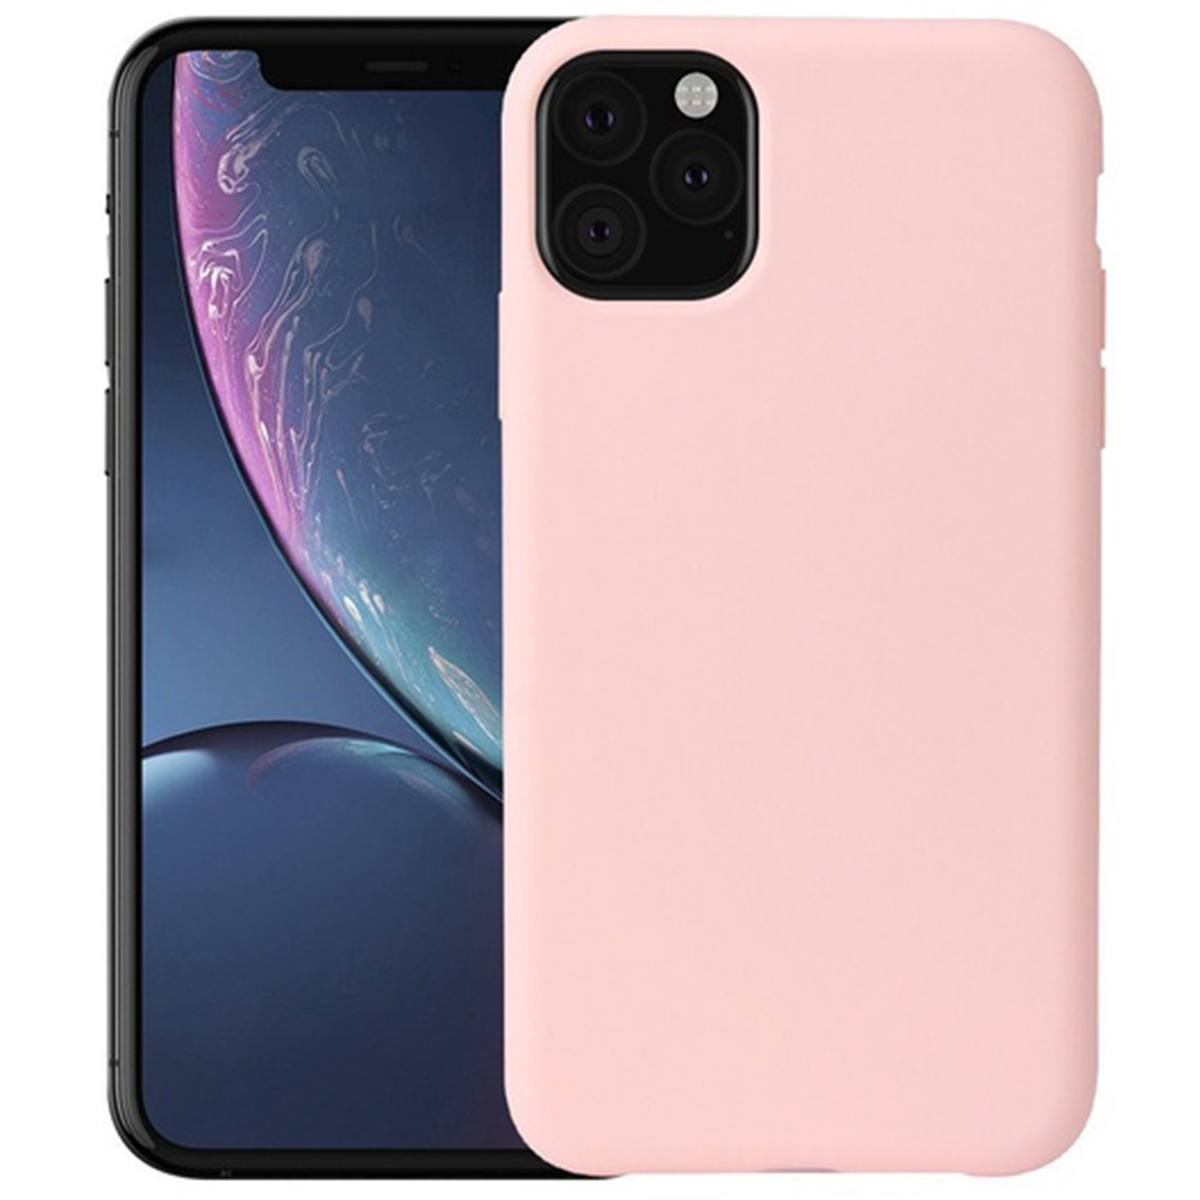 iPhone 11 Case Silicone Back Soft Rubber Cover - Pink